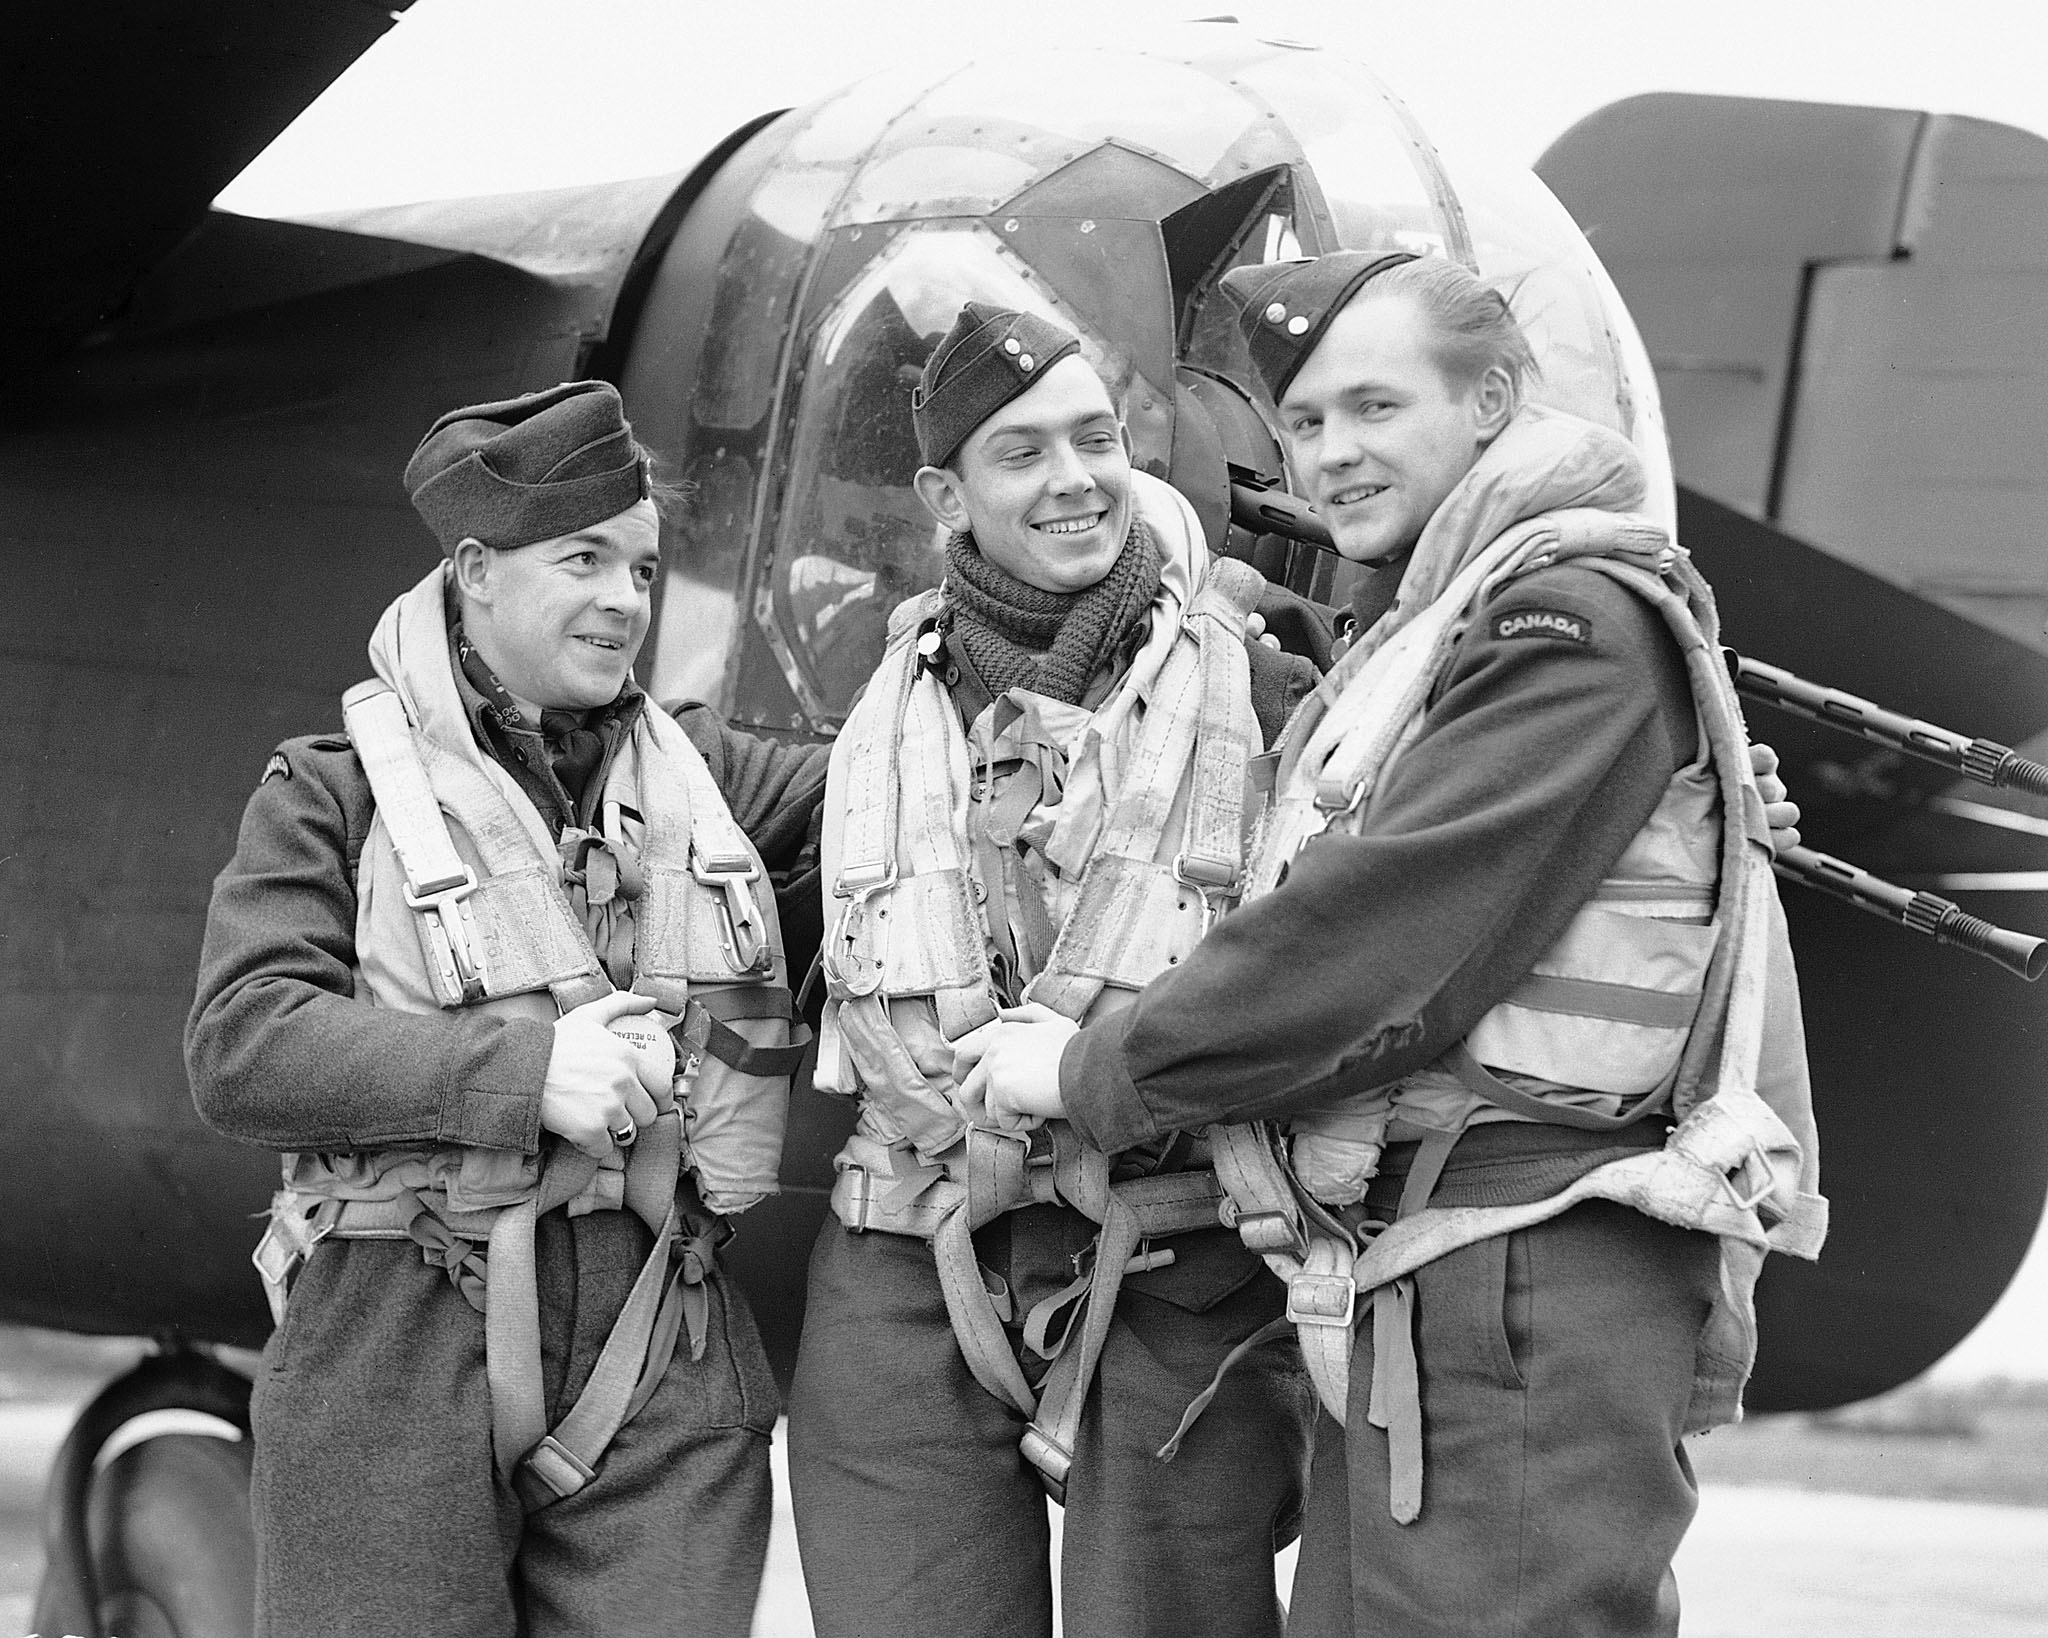 "The original caption of this 434 Squadron photo, taken on February 9, 1944, reads: ""These three airman from the Bluenose Squadron of the RCAF Bomber Group in England are now members of the 'Caterpillar Club' which is limited to those who have bailed out of an aircraft and walked home. It was during a recent attack on Berlin that their aircraft was shot up by flak from the enemy's defences which set the incendiaries on fire in the bomb bay, shot the rudder control away, making the aircraft hard to handle. On the way home they also ran short of petrol and were forced to 'hit the silk'. Shown adjusting parachute harness locks are (left to right) Sergeant Don Tofflemire, rear gunner; Sergeant W.G. ""Bill"" Whitton, mid-upper gunner; and Flight Sergeant Jim Campbell, bomb aimer."" PHOTO: DND Archives, PL-22973"